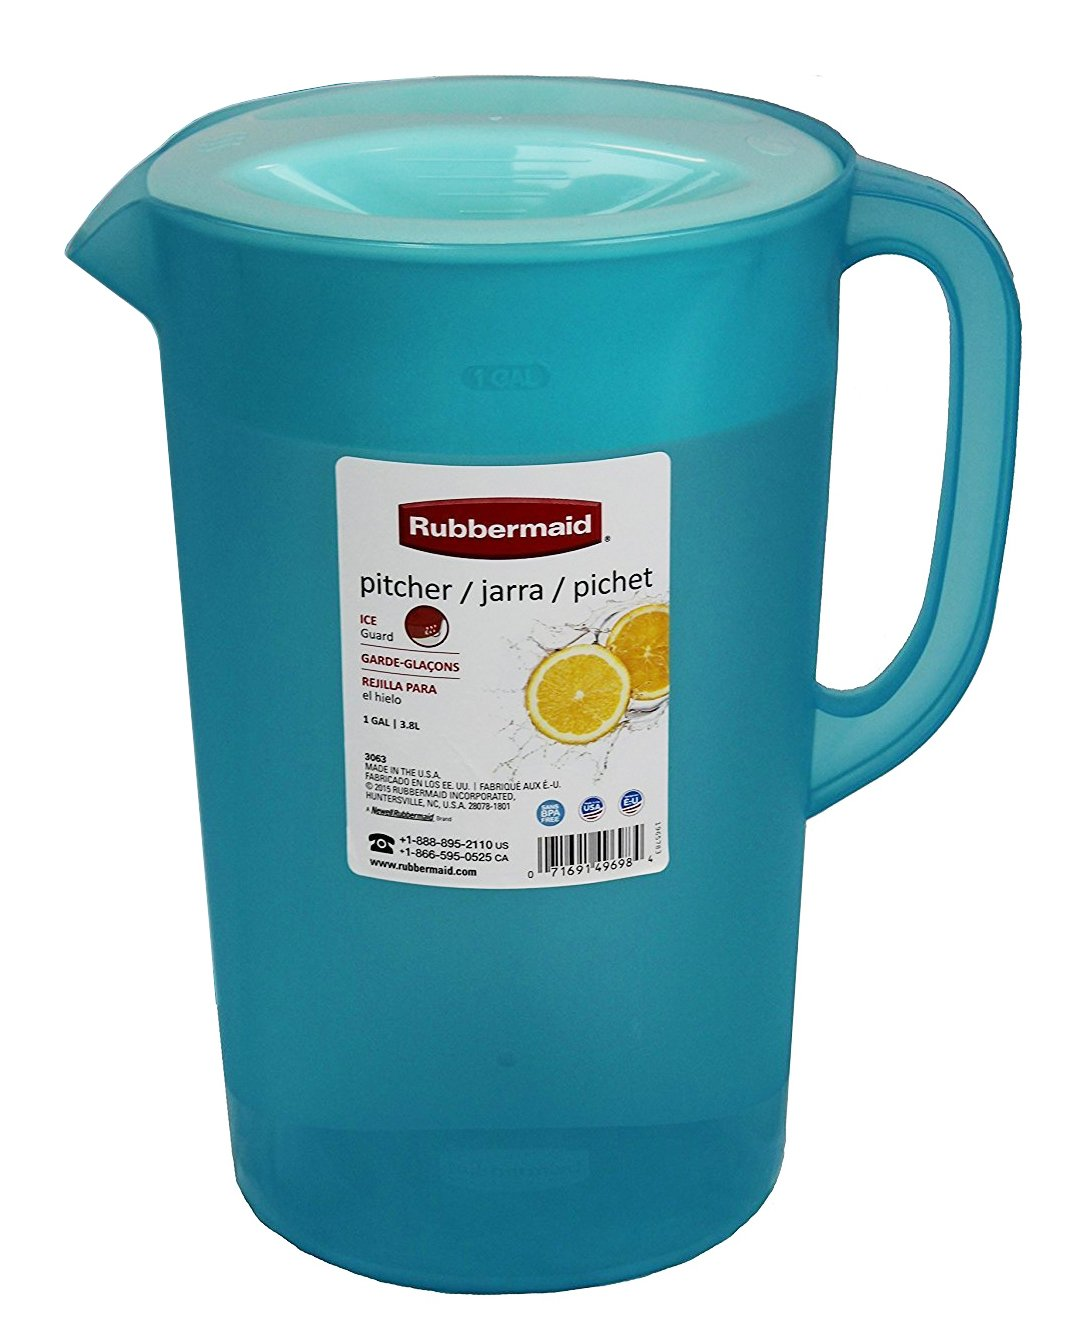 Rubbermaid 26074 Limited Edition Dishwasher Safe Pitcher, 1 Gallon, Blue